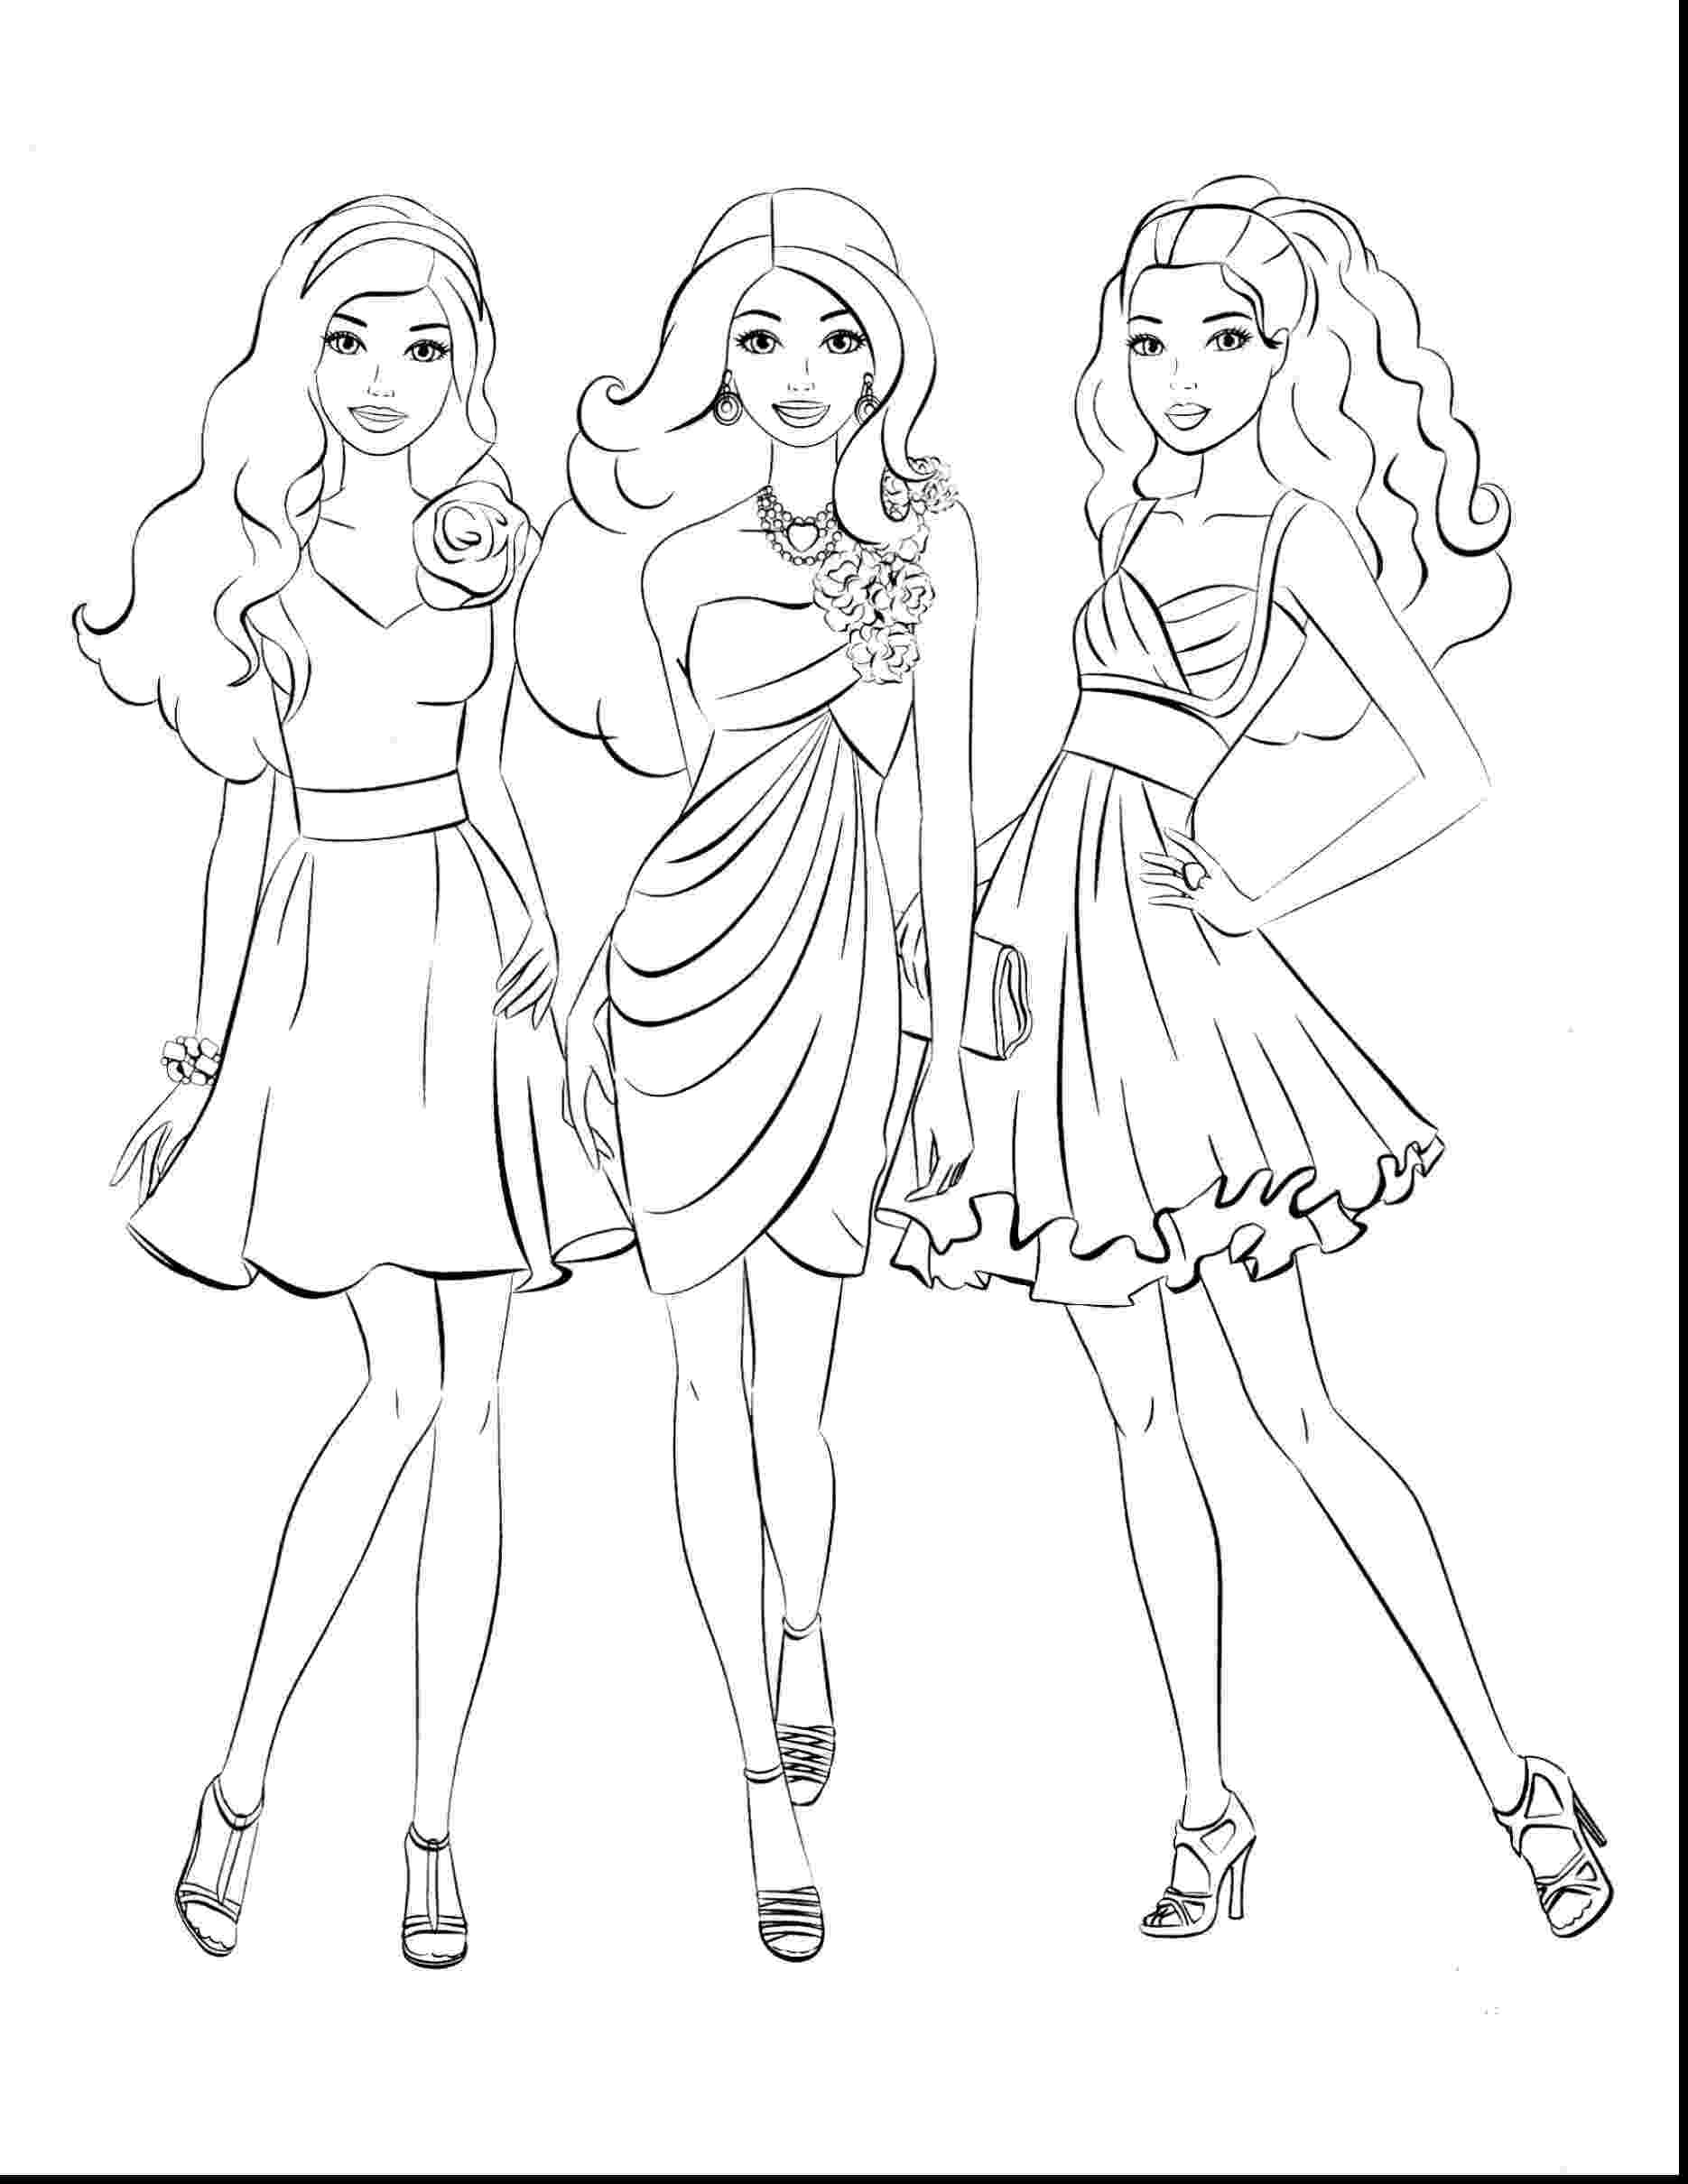 barbie print out coloring pages barbie and friends coloring pages getcoloringpagescom pages coloring print out barbie